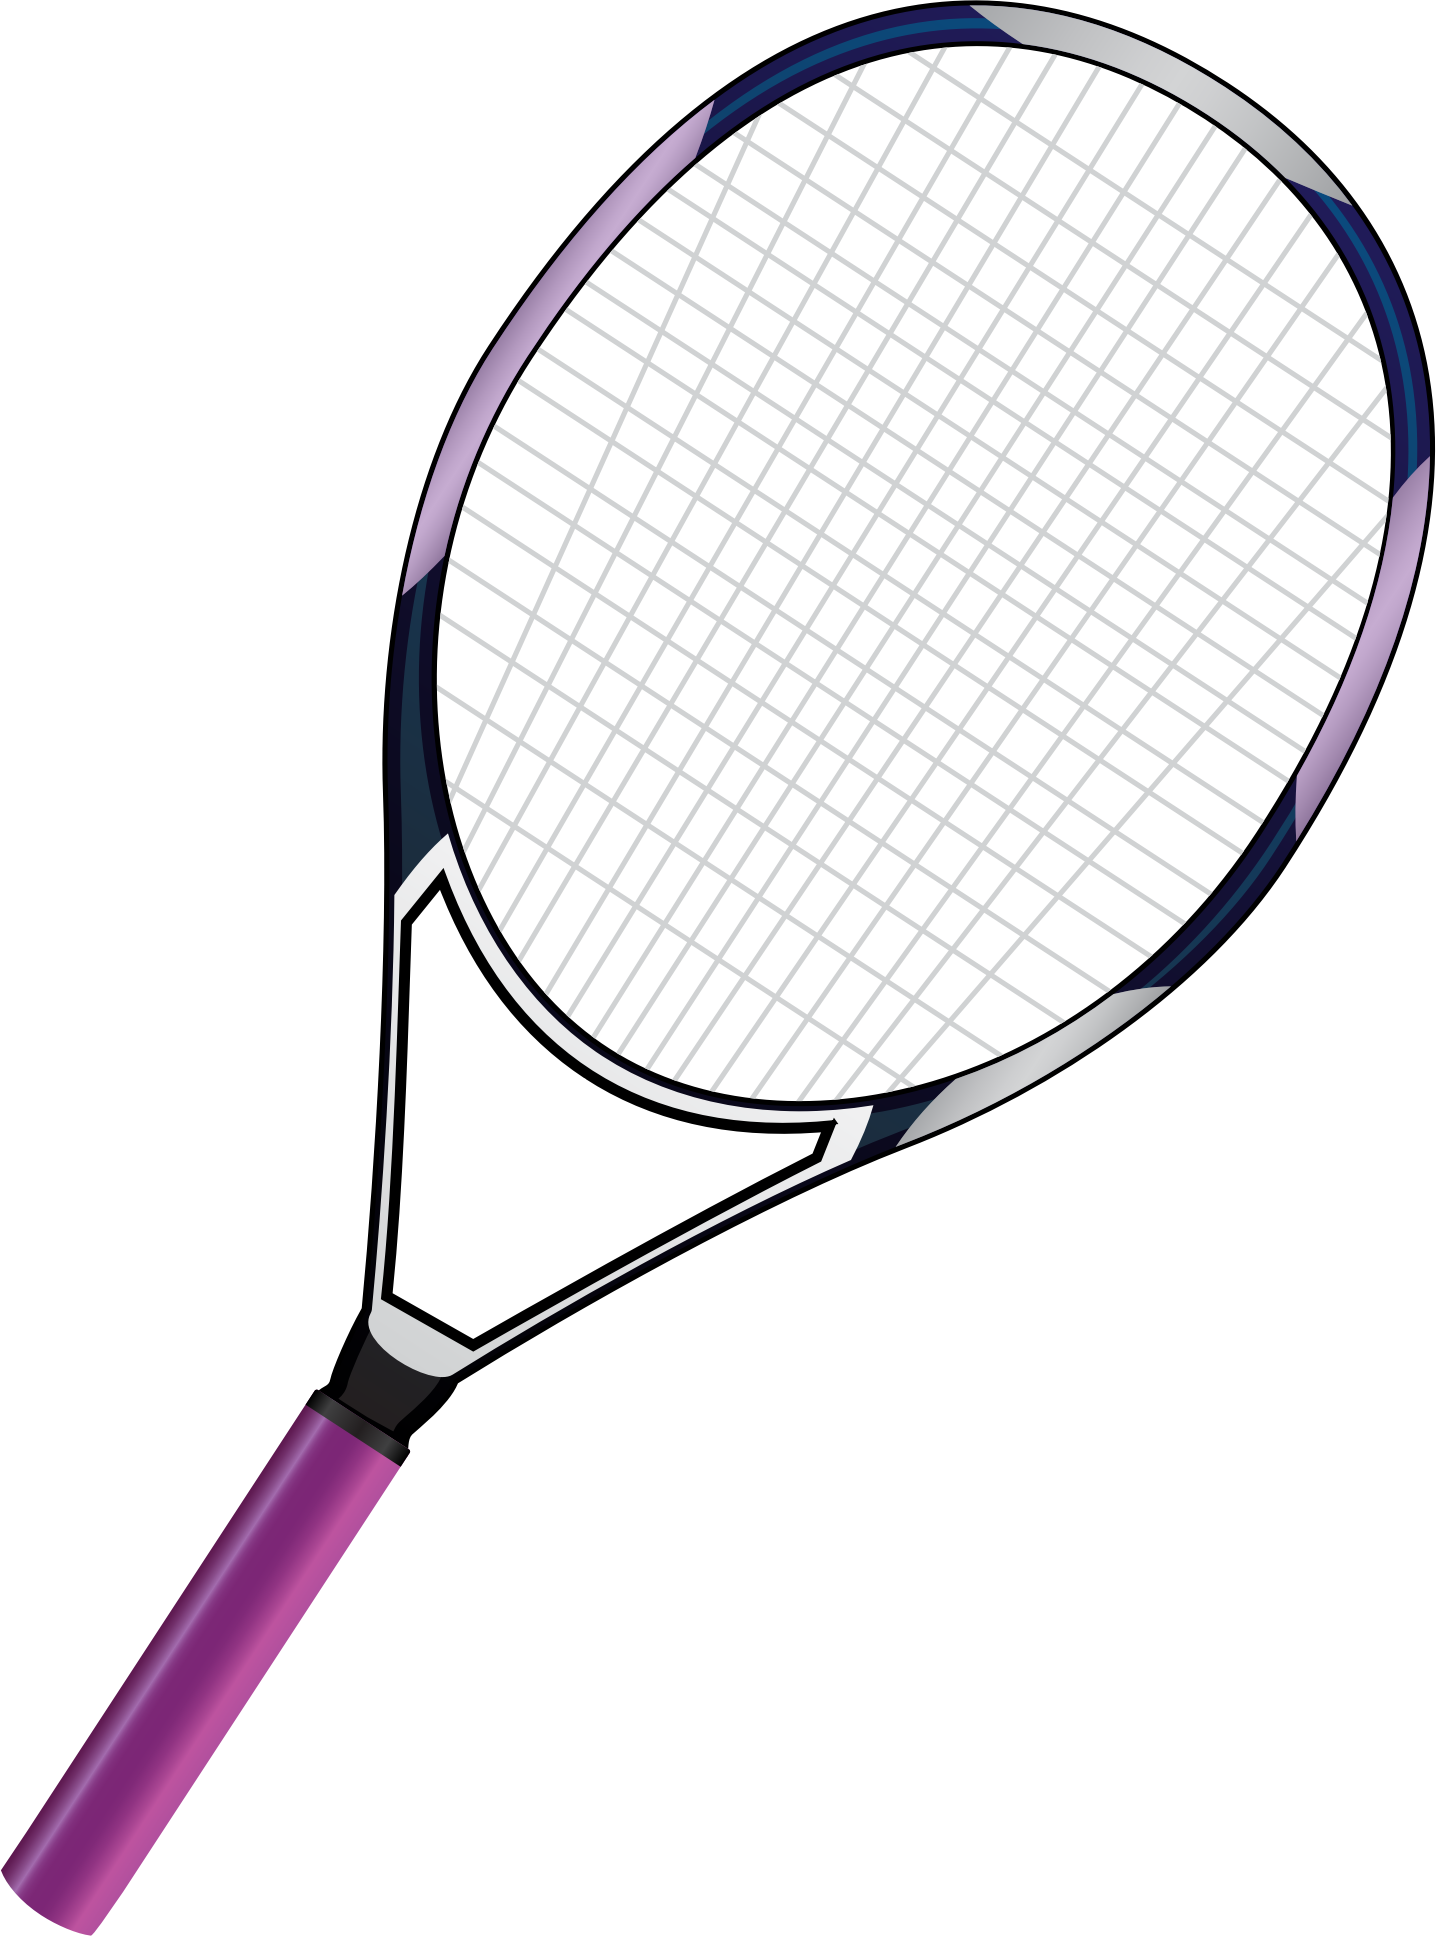 Racket clipart pink tennis racket. Cilpart amazing design racquet